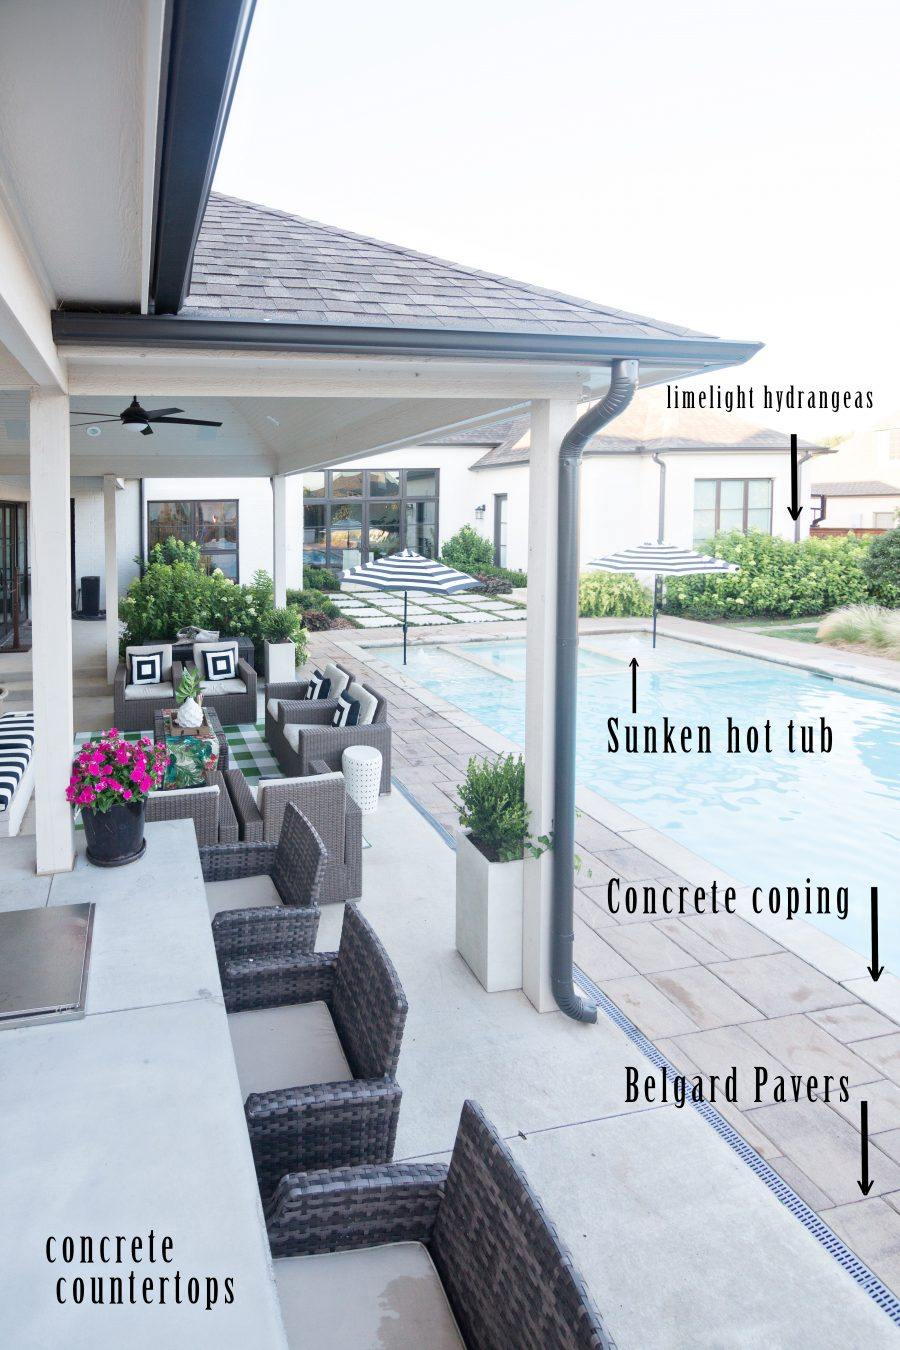 How to Design a Beautiful Pool and Outdoor Living Area best outdoor patio pavers black and white outdoor umbrellas rectangle pool sunken hot tub concrete pavers white house black windows outdoor concrete countertops